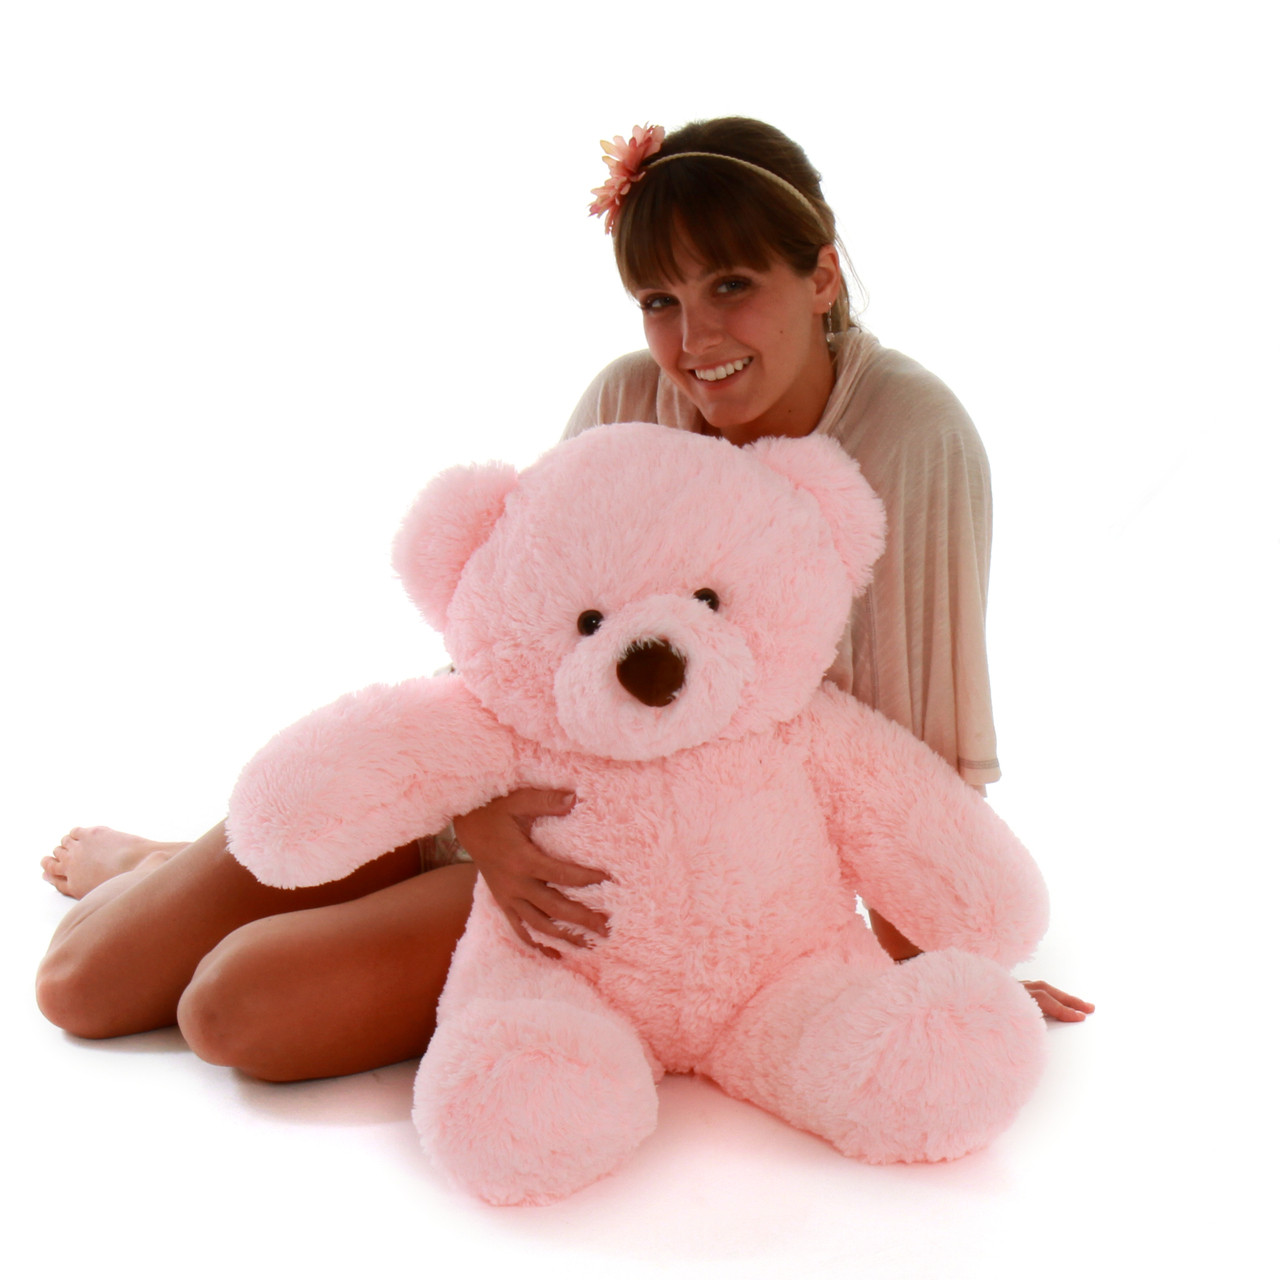 Gigi Chubs Light Rose 30in US Made Giant Teddy Super Adorable